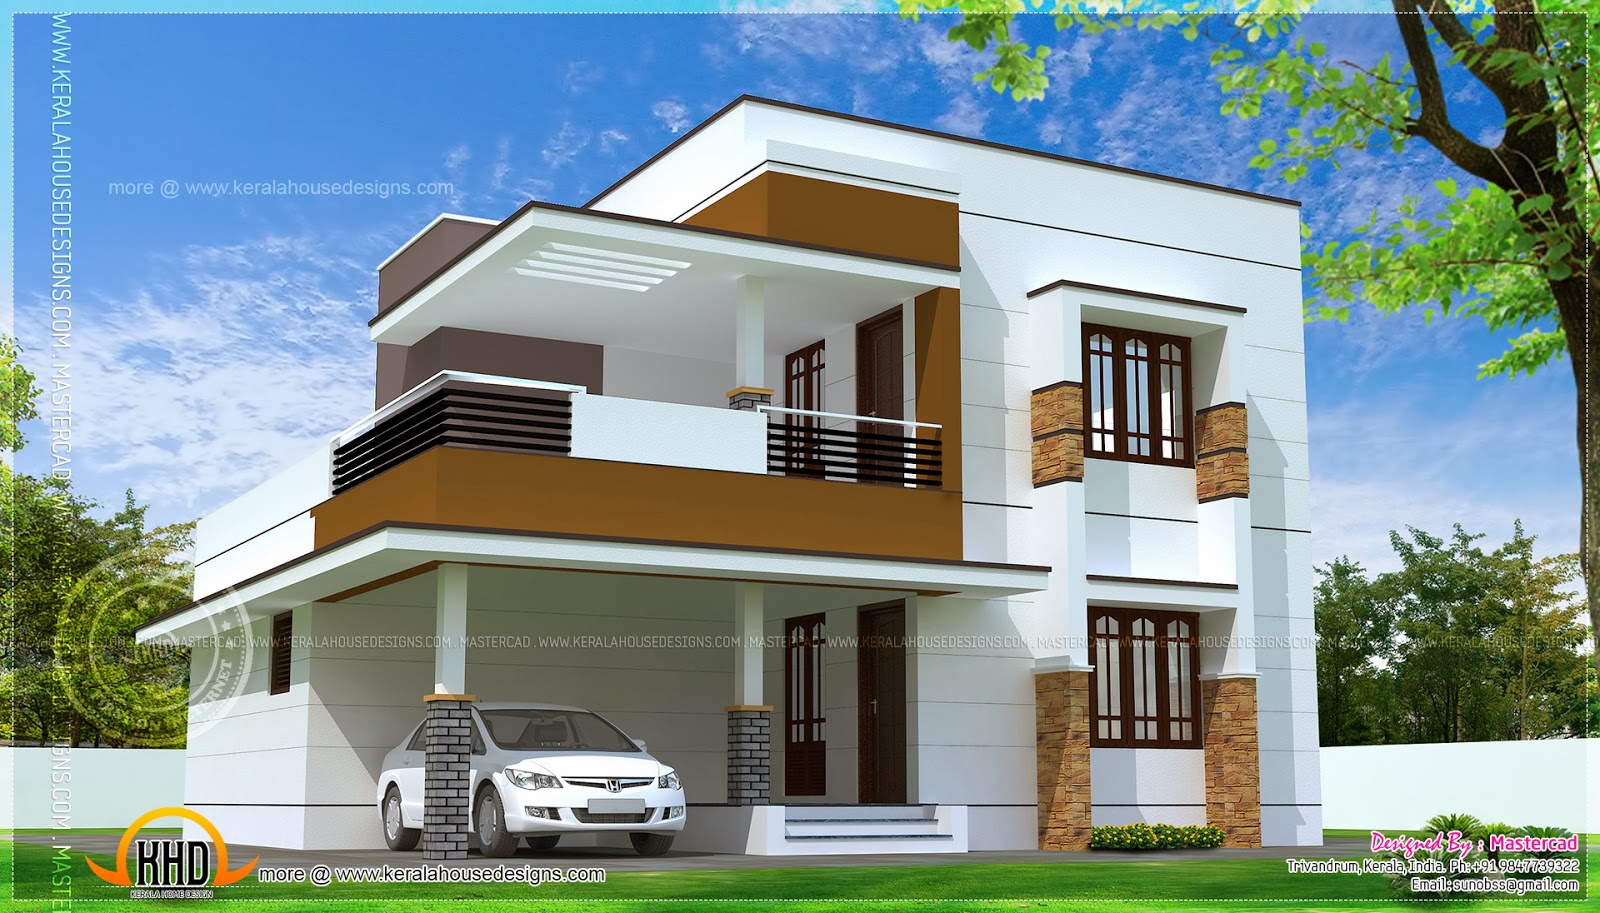 November 2013 kerala home design and floor plans Home layout